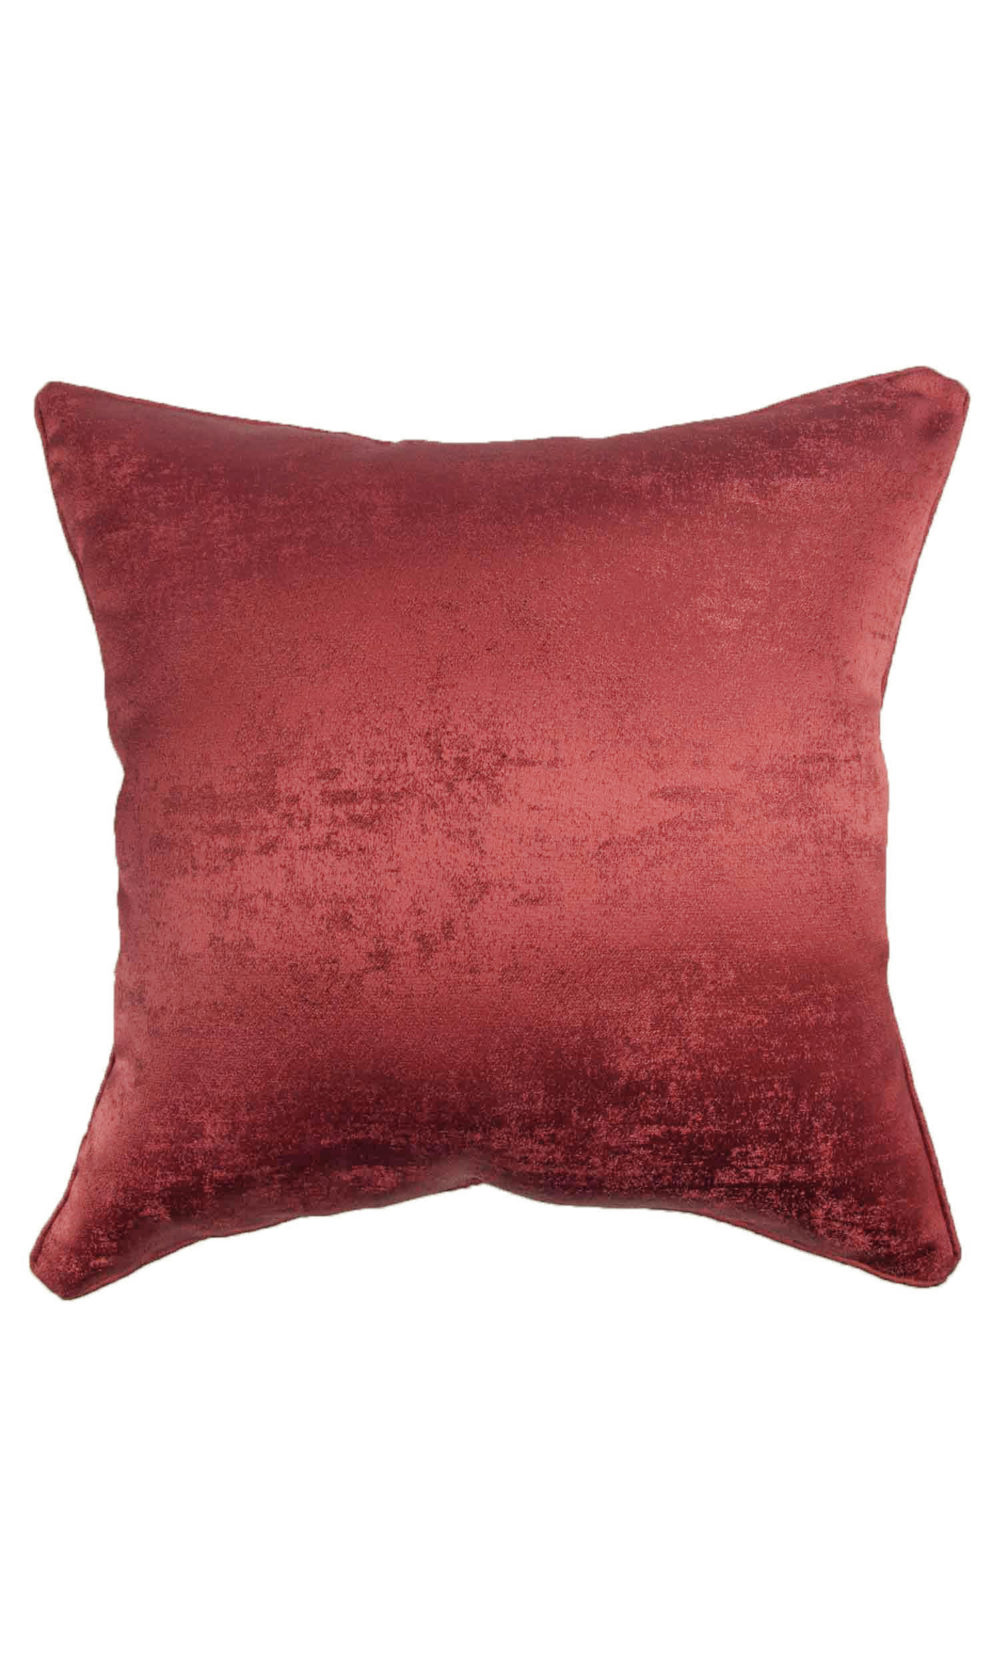 Abstract Affordable Cushion Cover